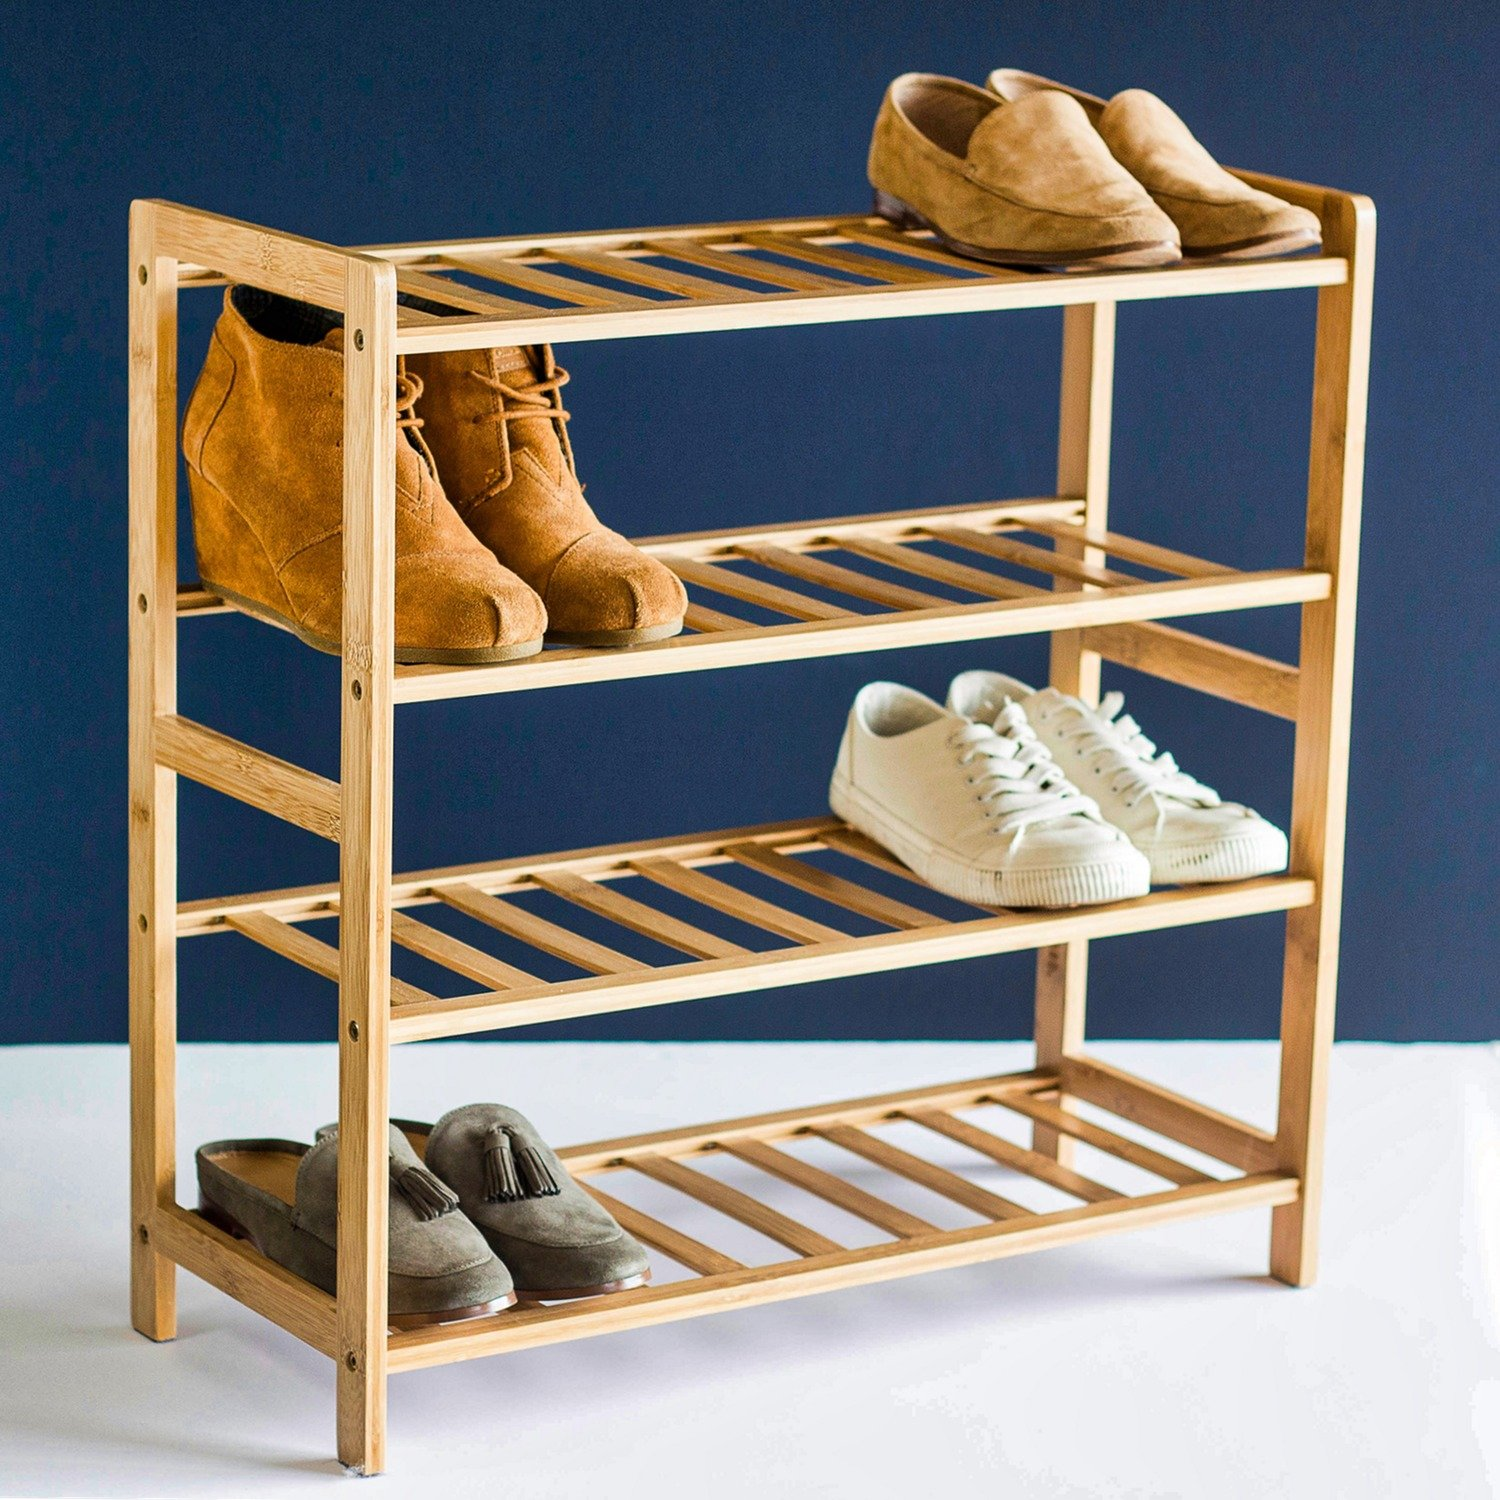 How To Make A Shoe Rack.Stndrd Bamboo Shoe Rack Organizer From Perfect For Closets